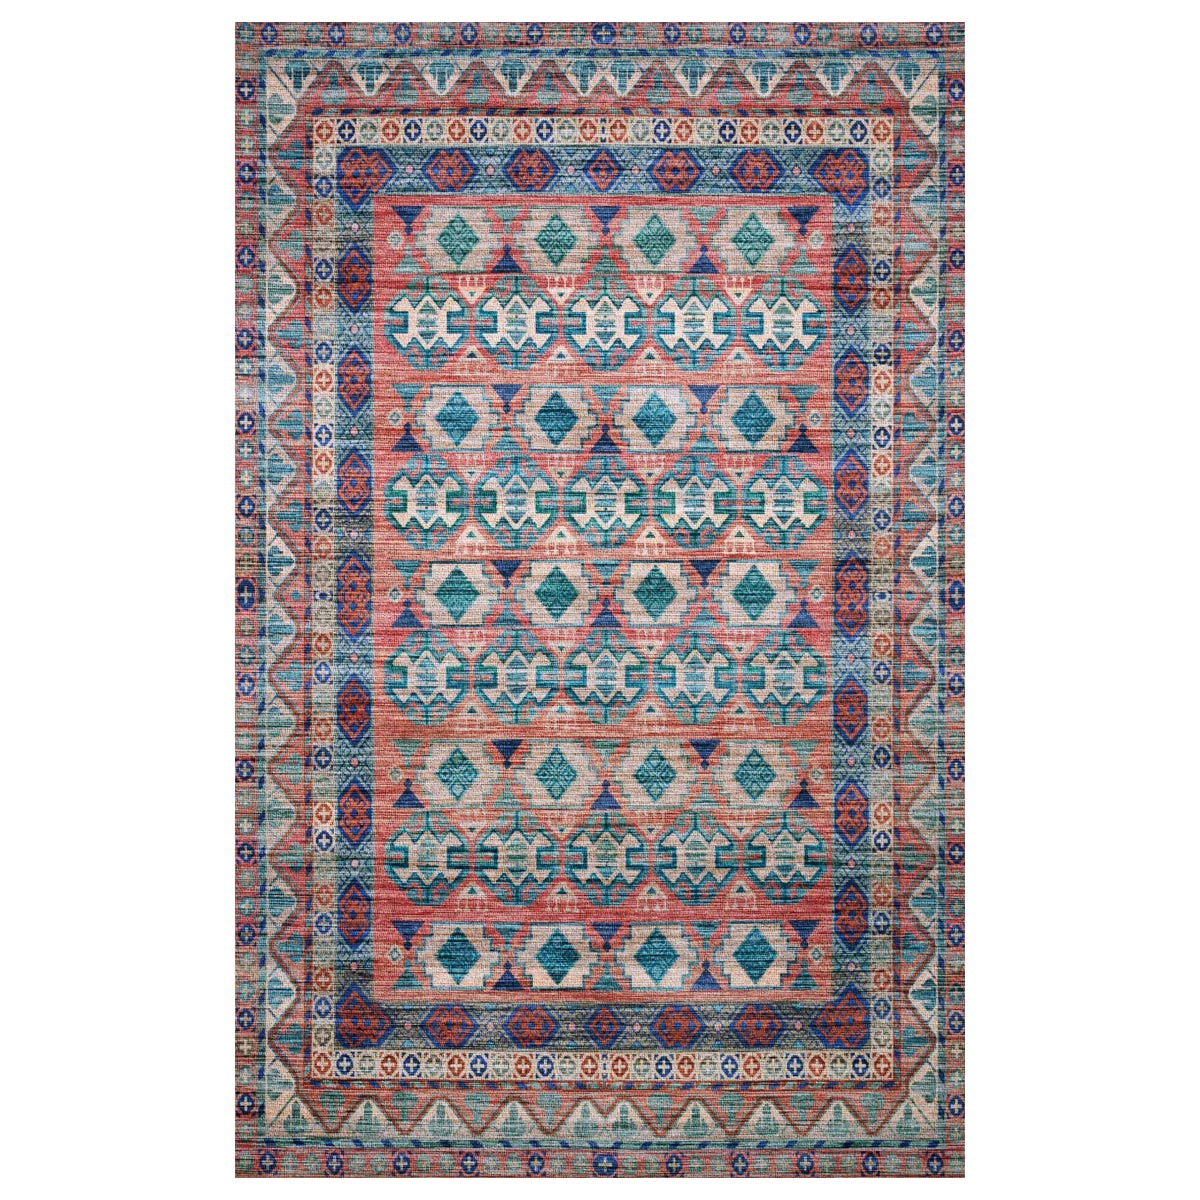 Upland Terracotta Sunset Rug - 2 x4